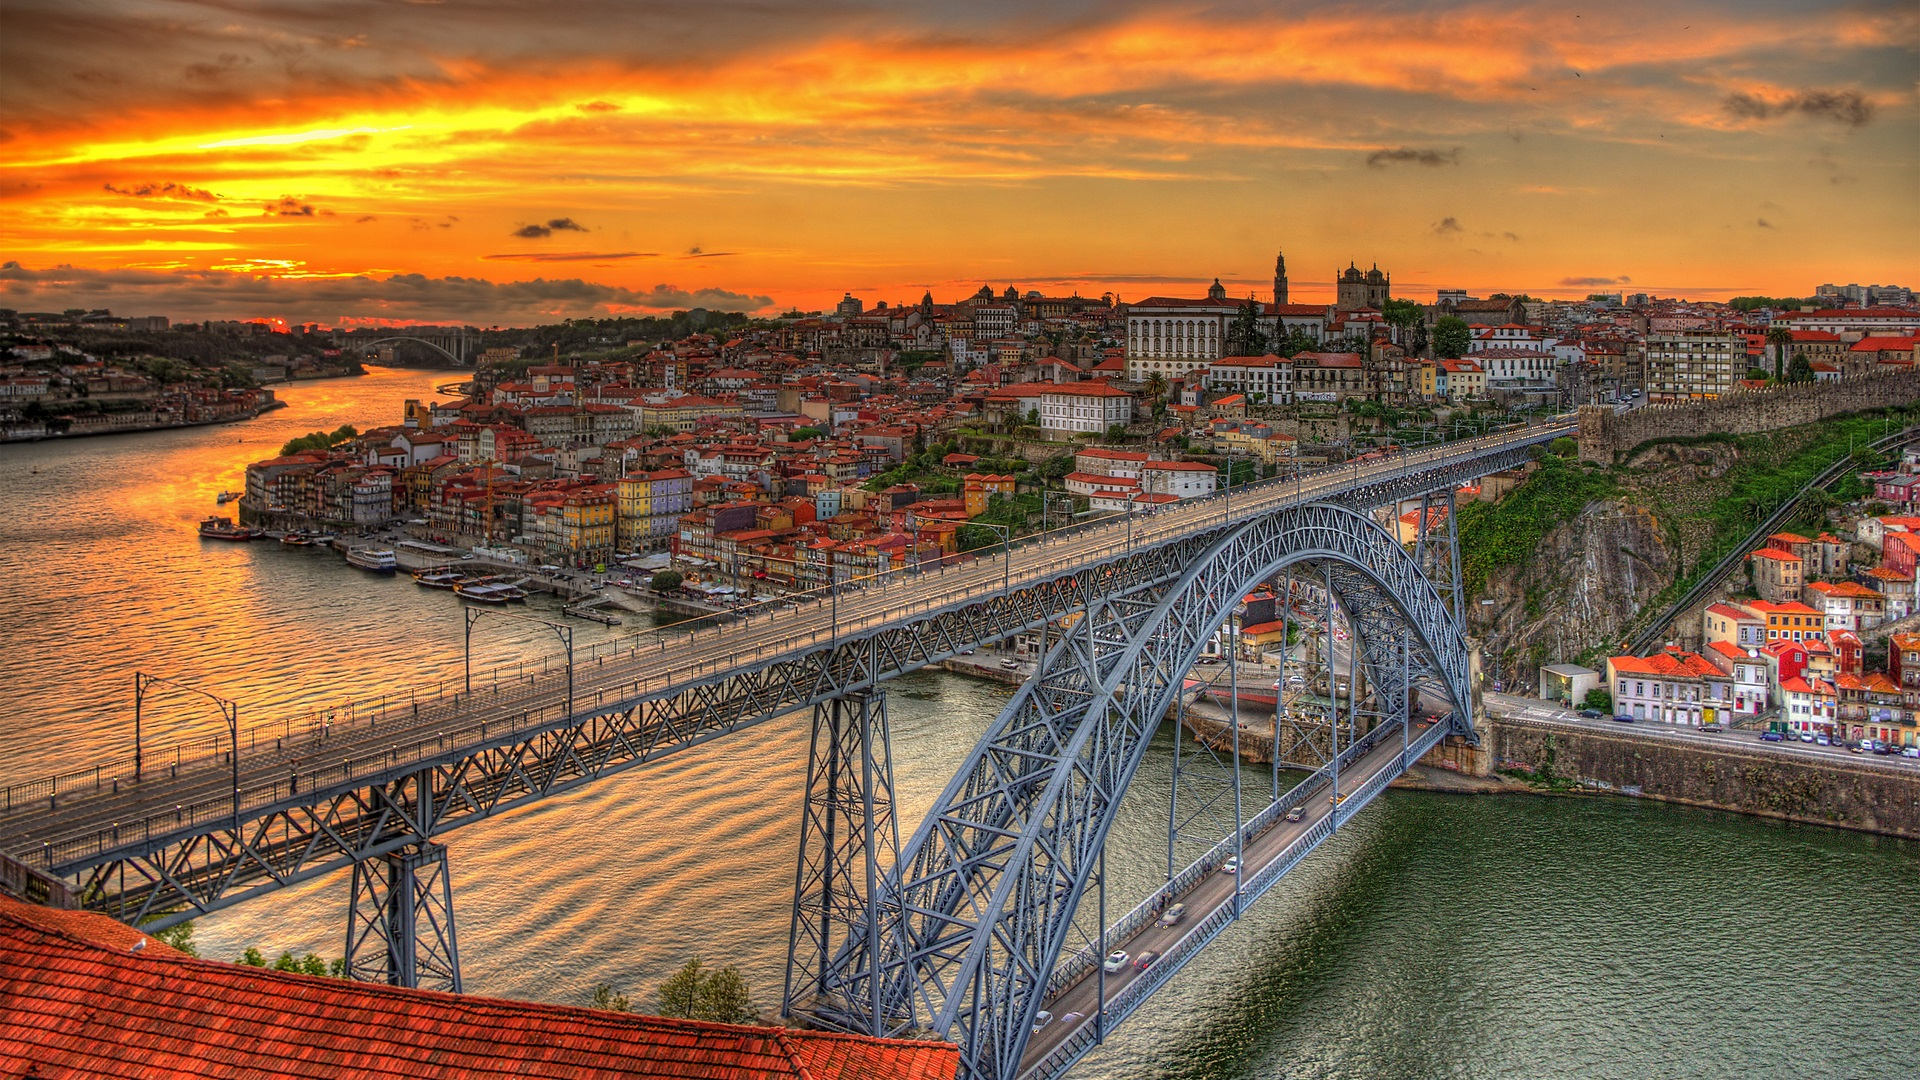 De brug over de rivier in Porto, Portugal